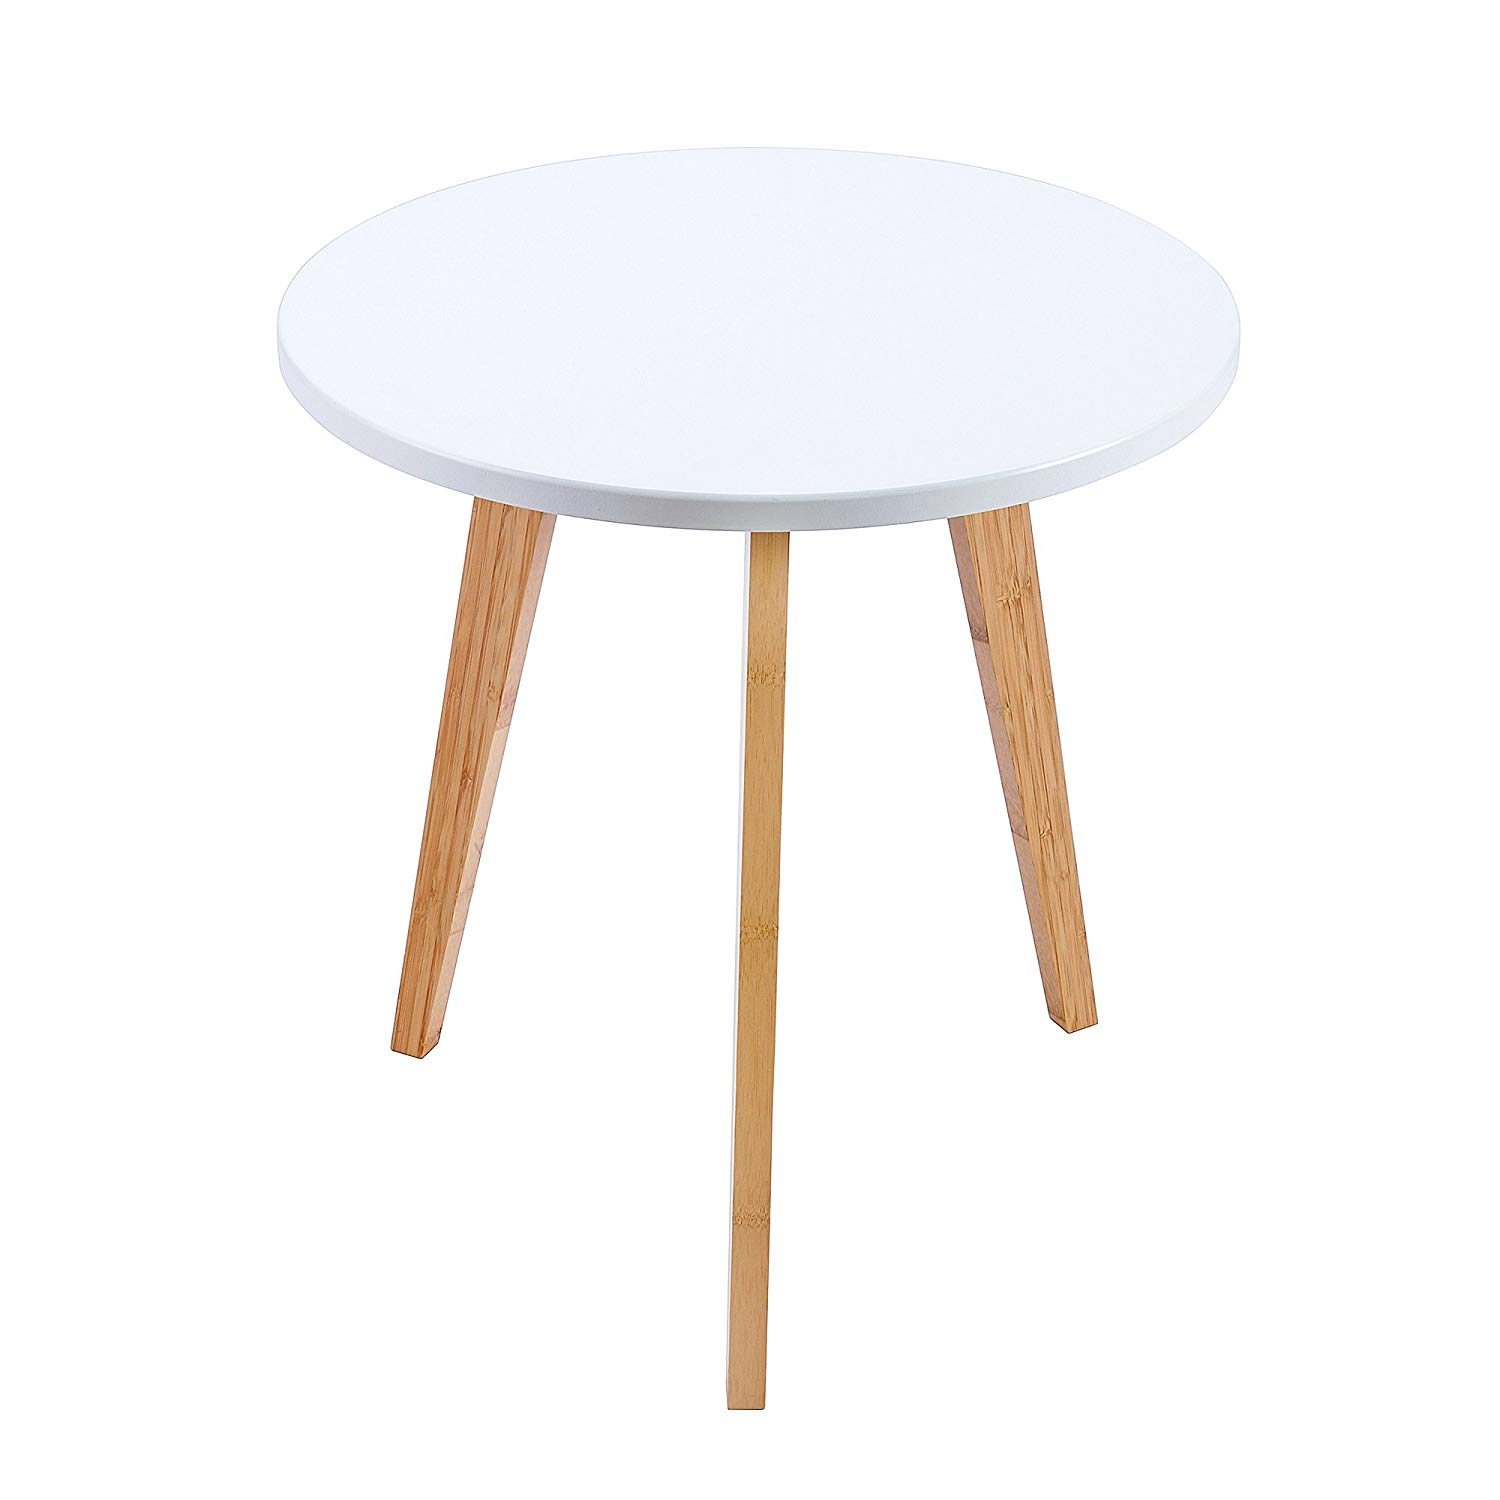 wilshine small round end table for spaces bedroom tables living room with white top and natural bamboo legs kitchen dining nightstand oval coffee glass replacement matching